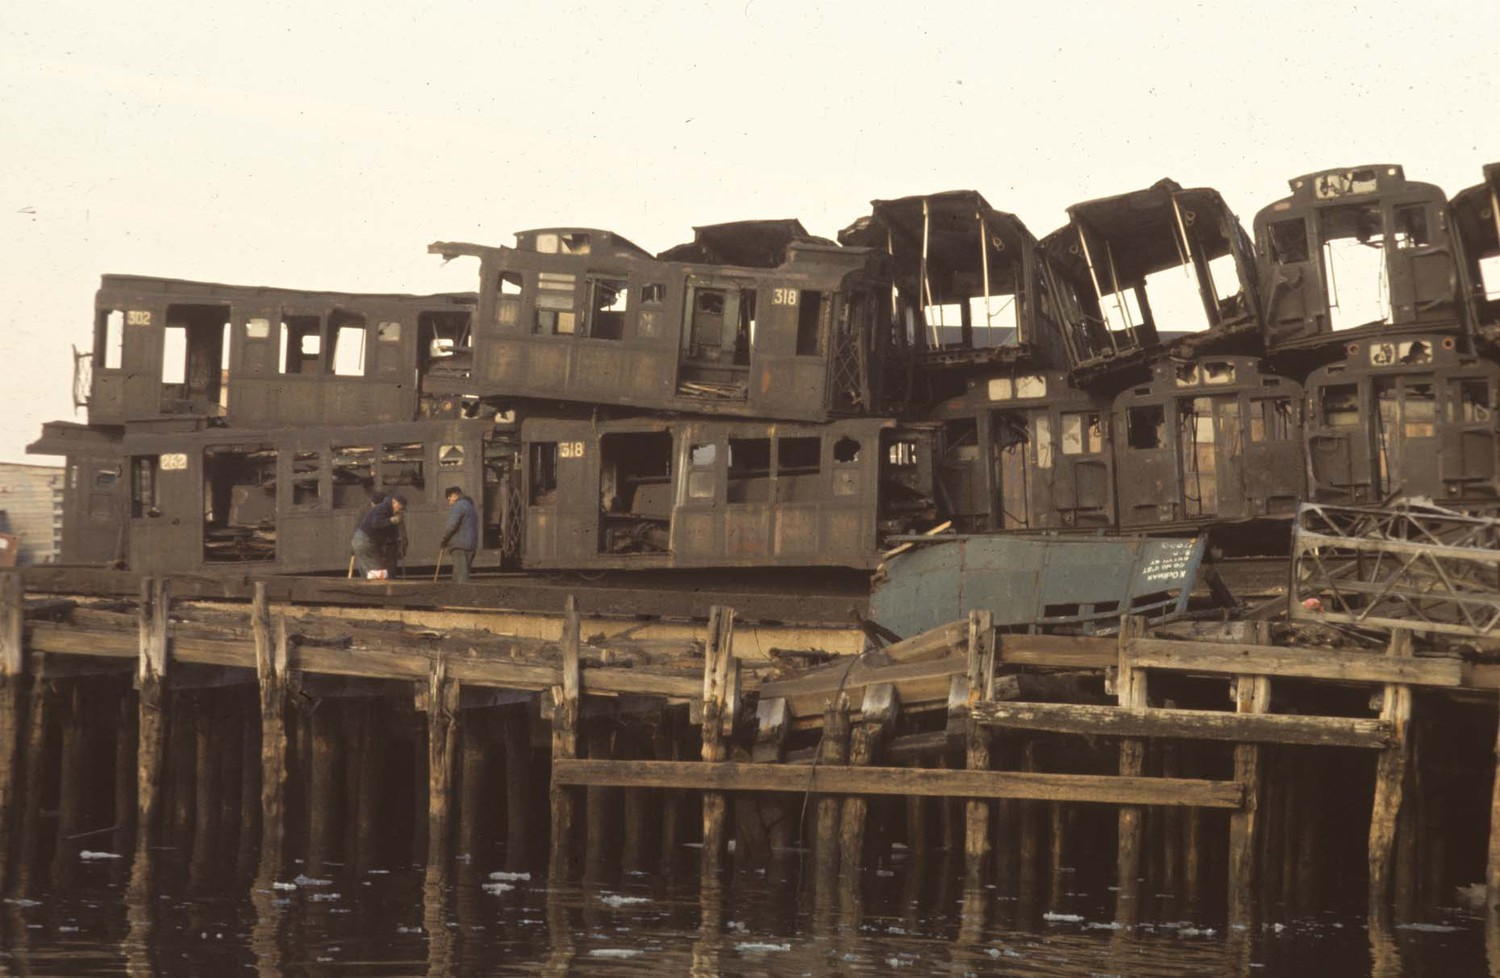 Pier with old subway cars, South Brooklyn, 1970